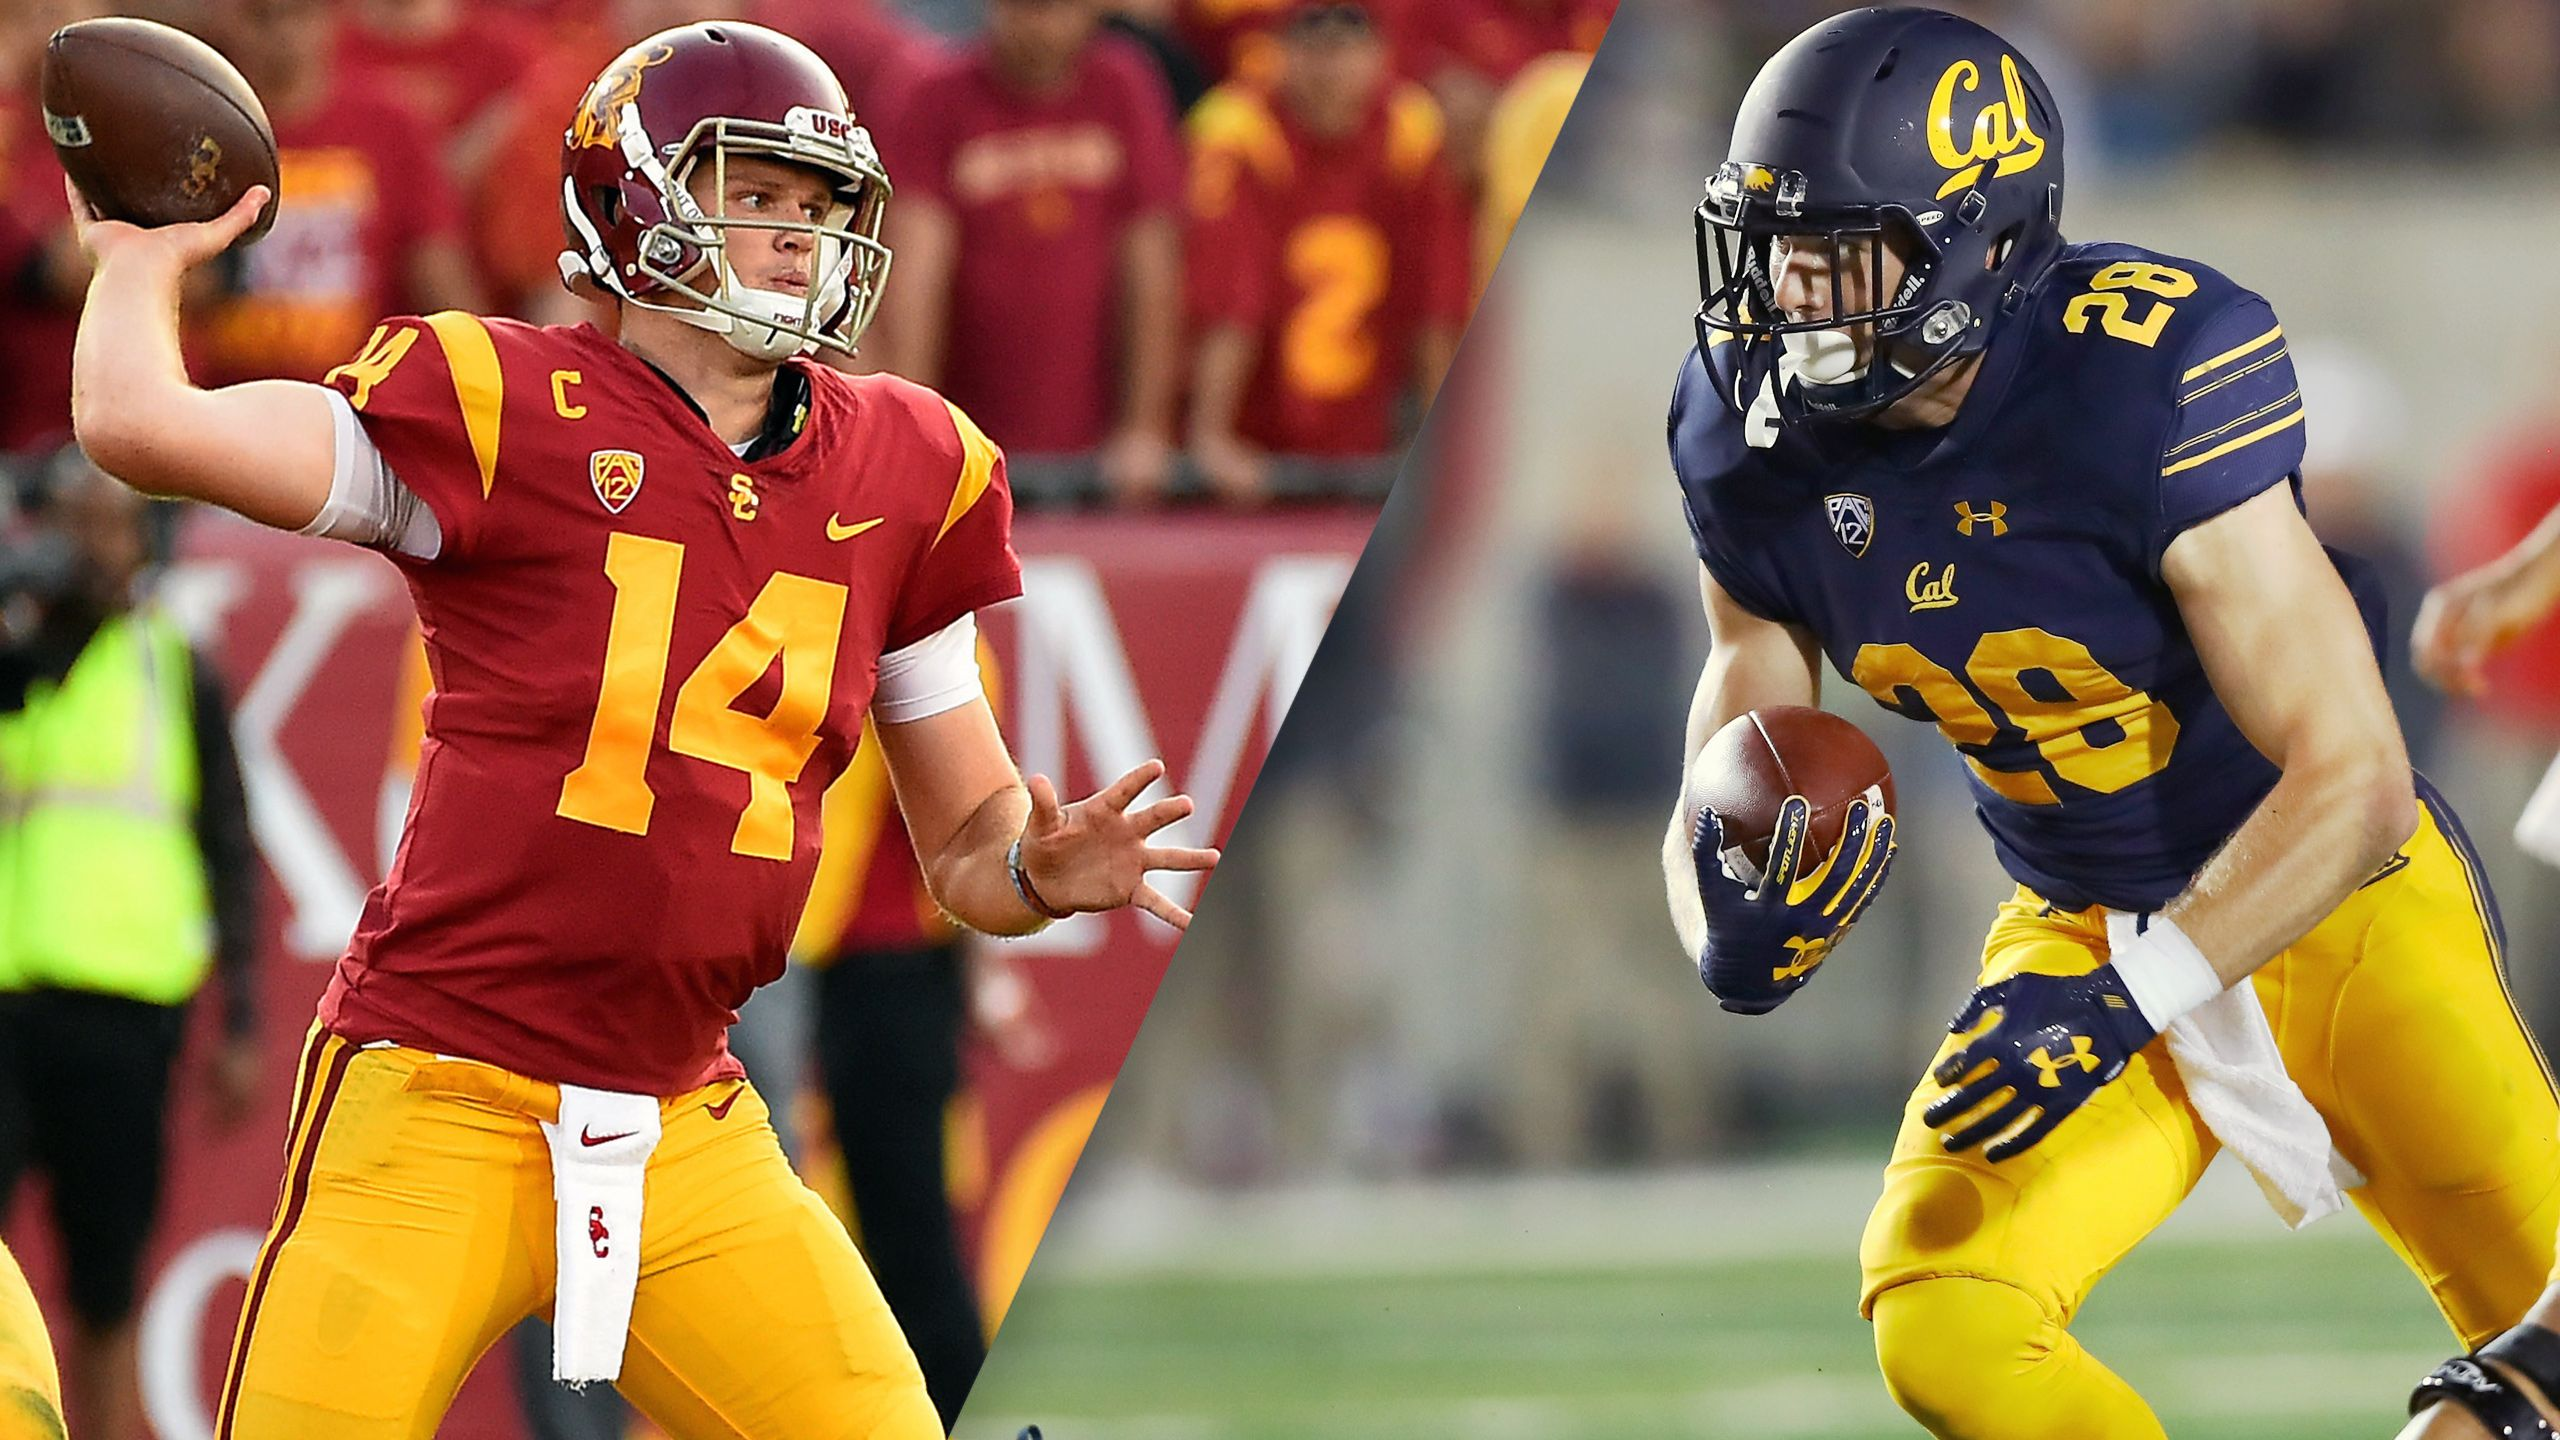 #5 USC vs. California (Football)